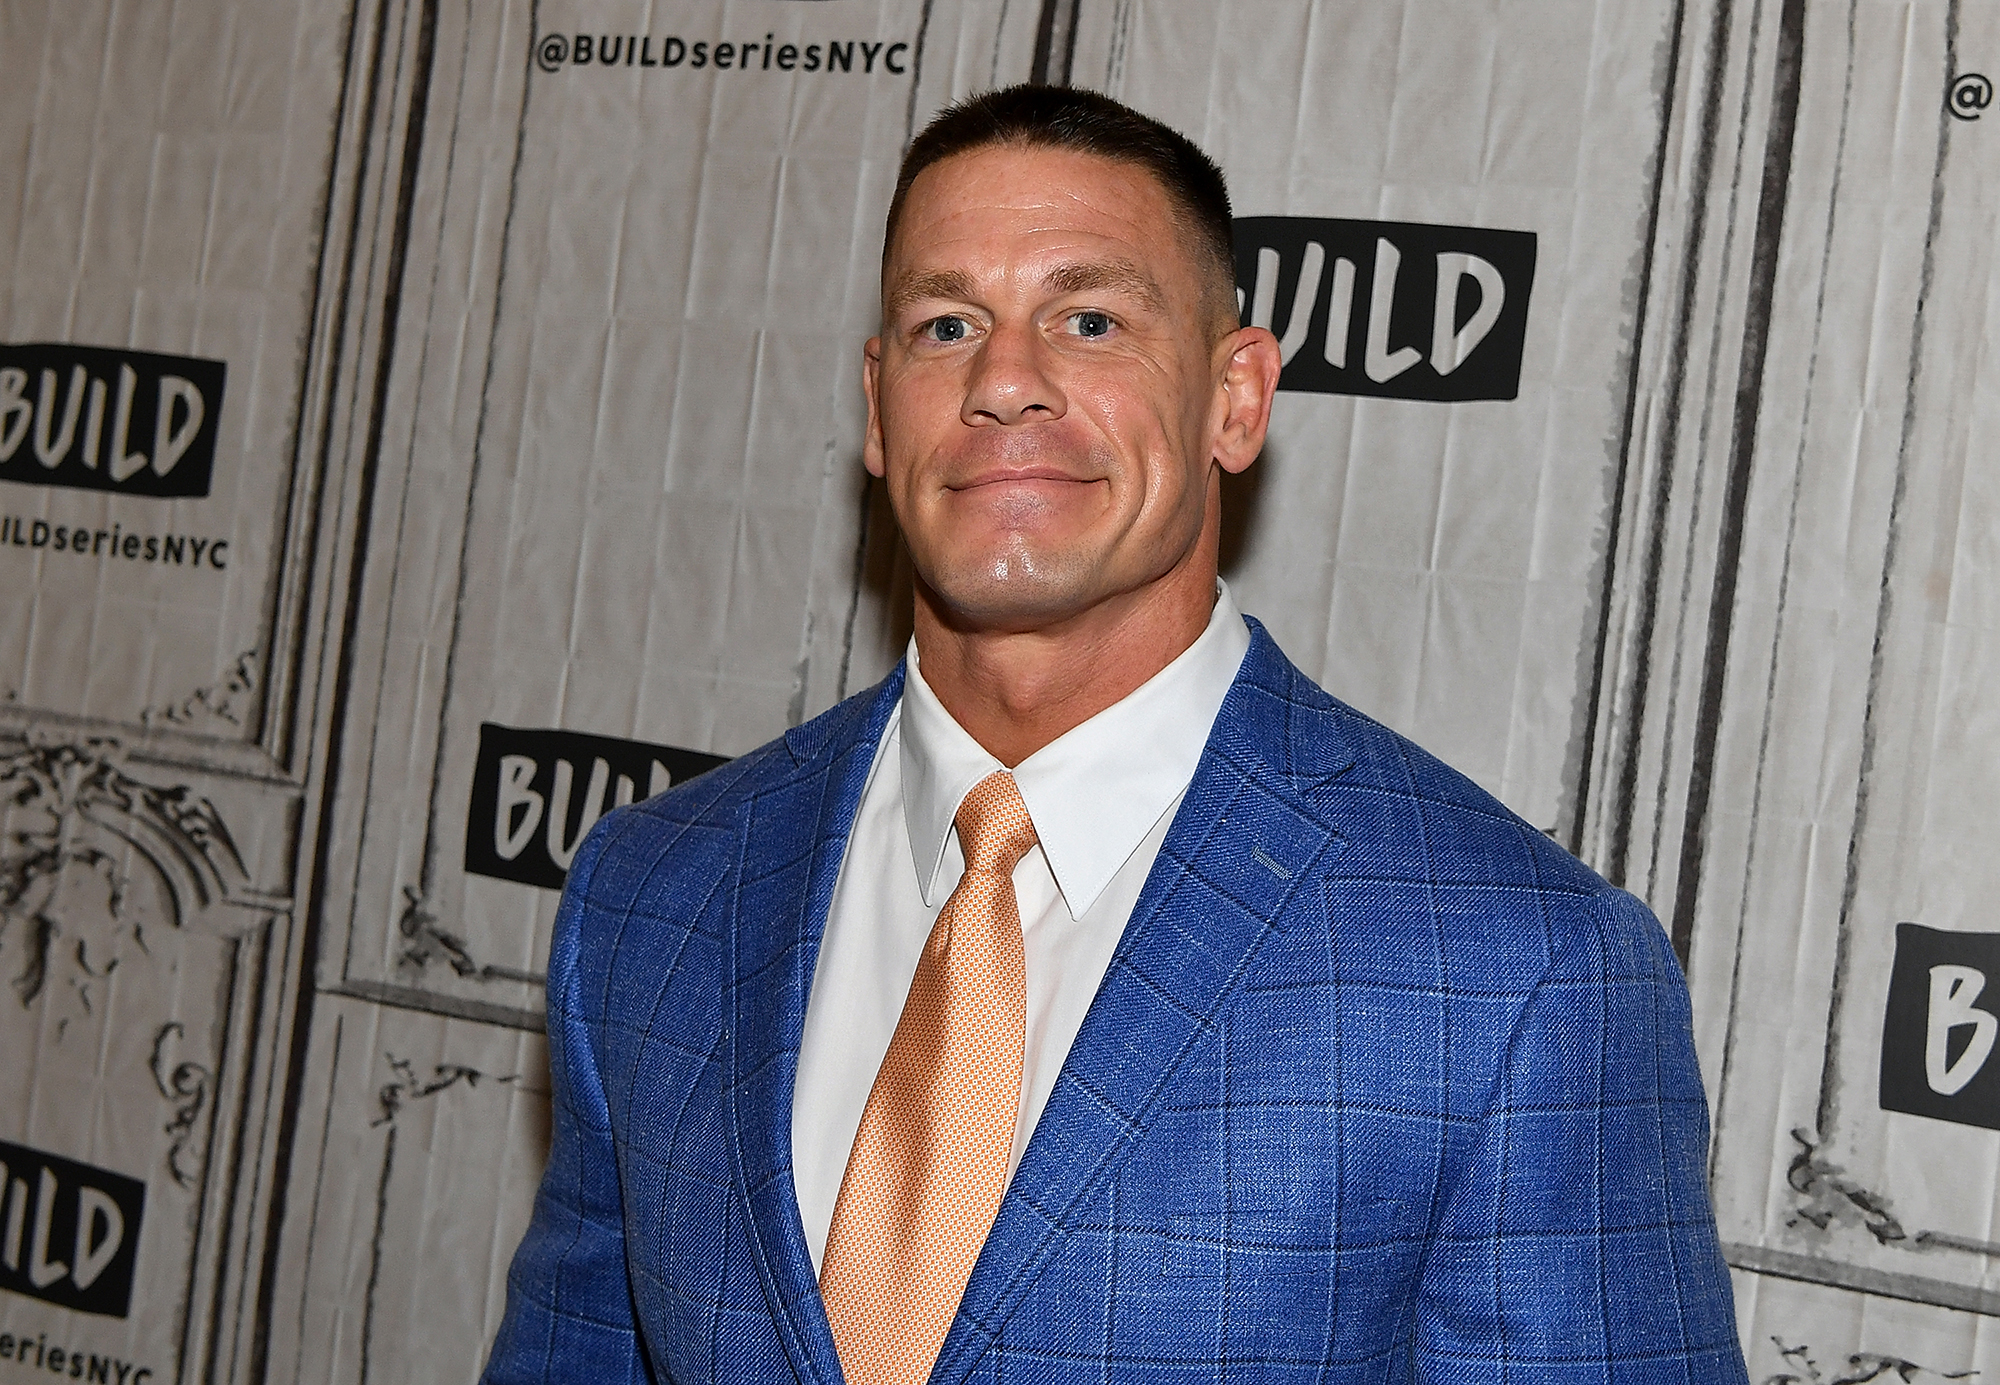 John Cena goes on Jimmy Kimmel Live! and does a PSA